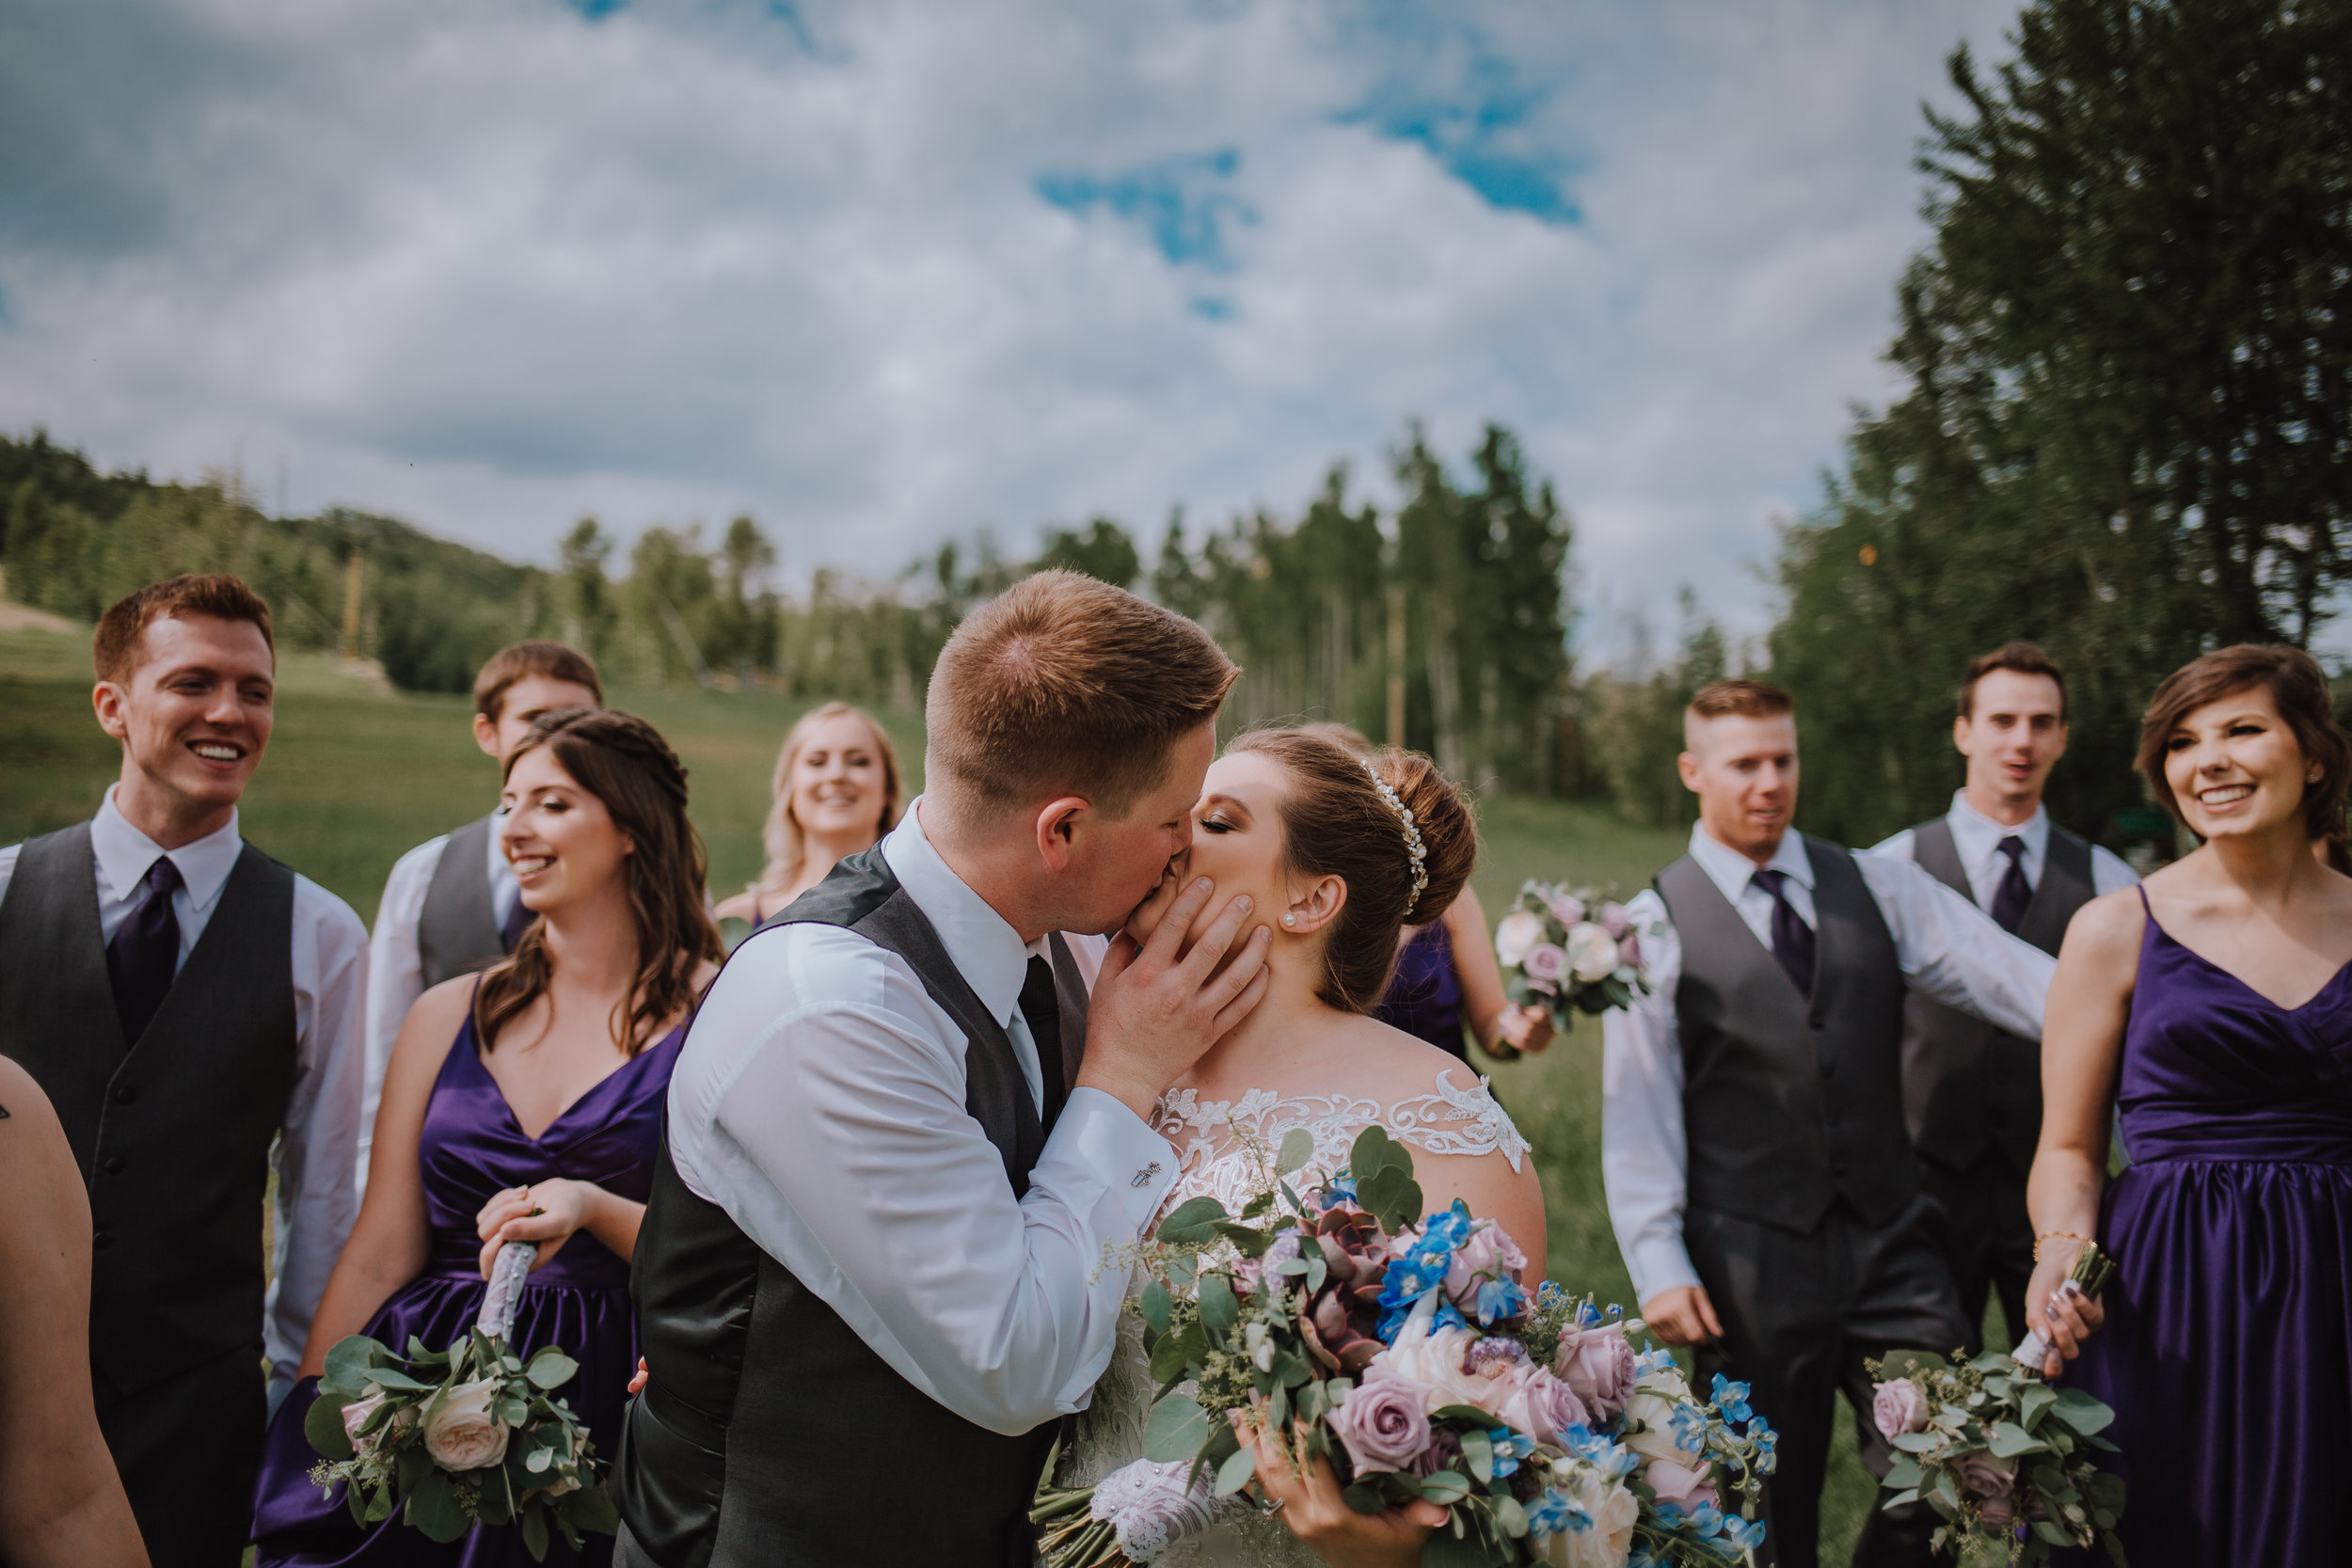 Elegance Package - The Elegant Wedding Package provides you and your significant other with everything in the Majestic package, but gives you the addition of your reception. Coverage is up till a half hour past your first dance, and must not exceed 7 hours.Investment: $2750 +gst